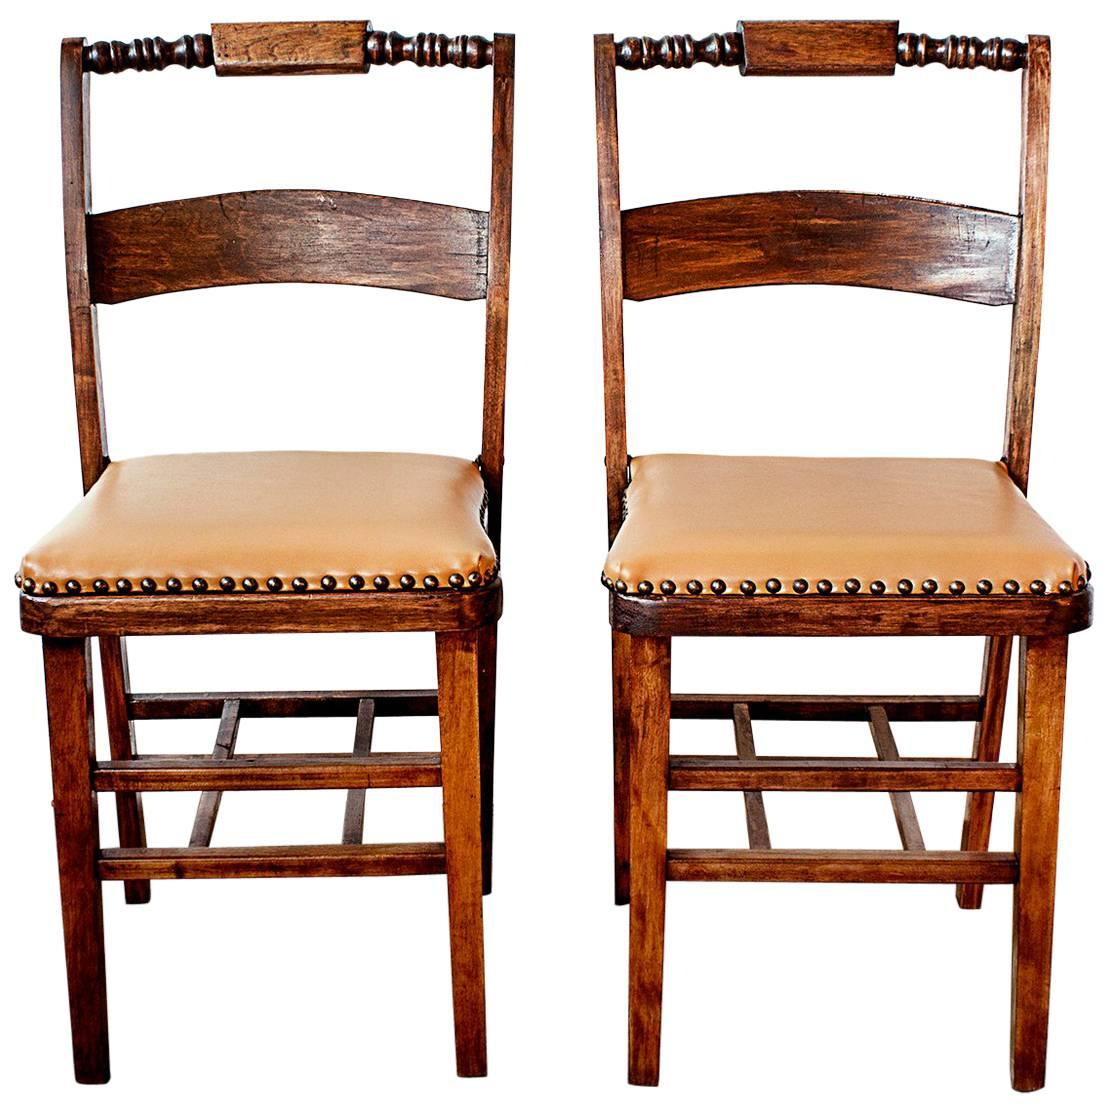 Set Of Two Antique Folding Wood Chairs, Circa 1930s For Sale